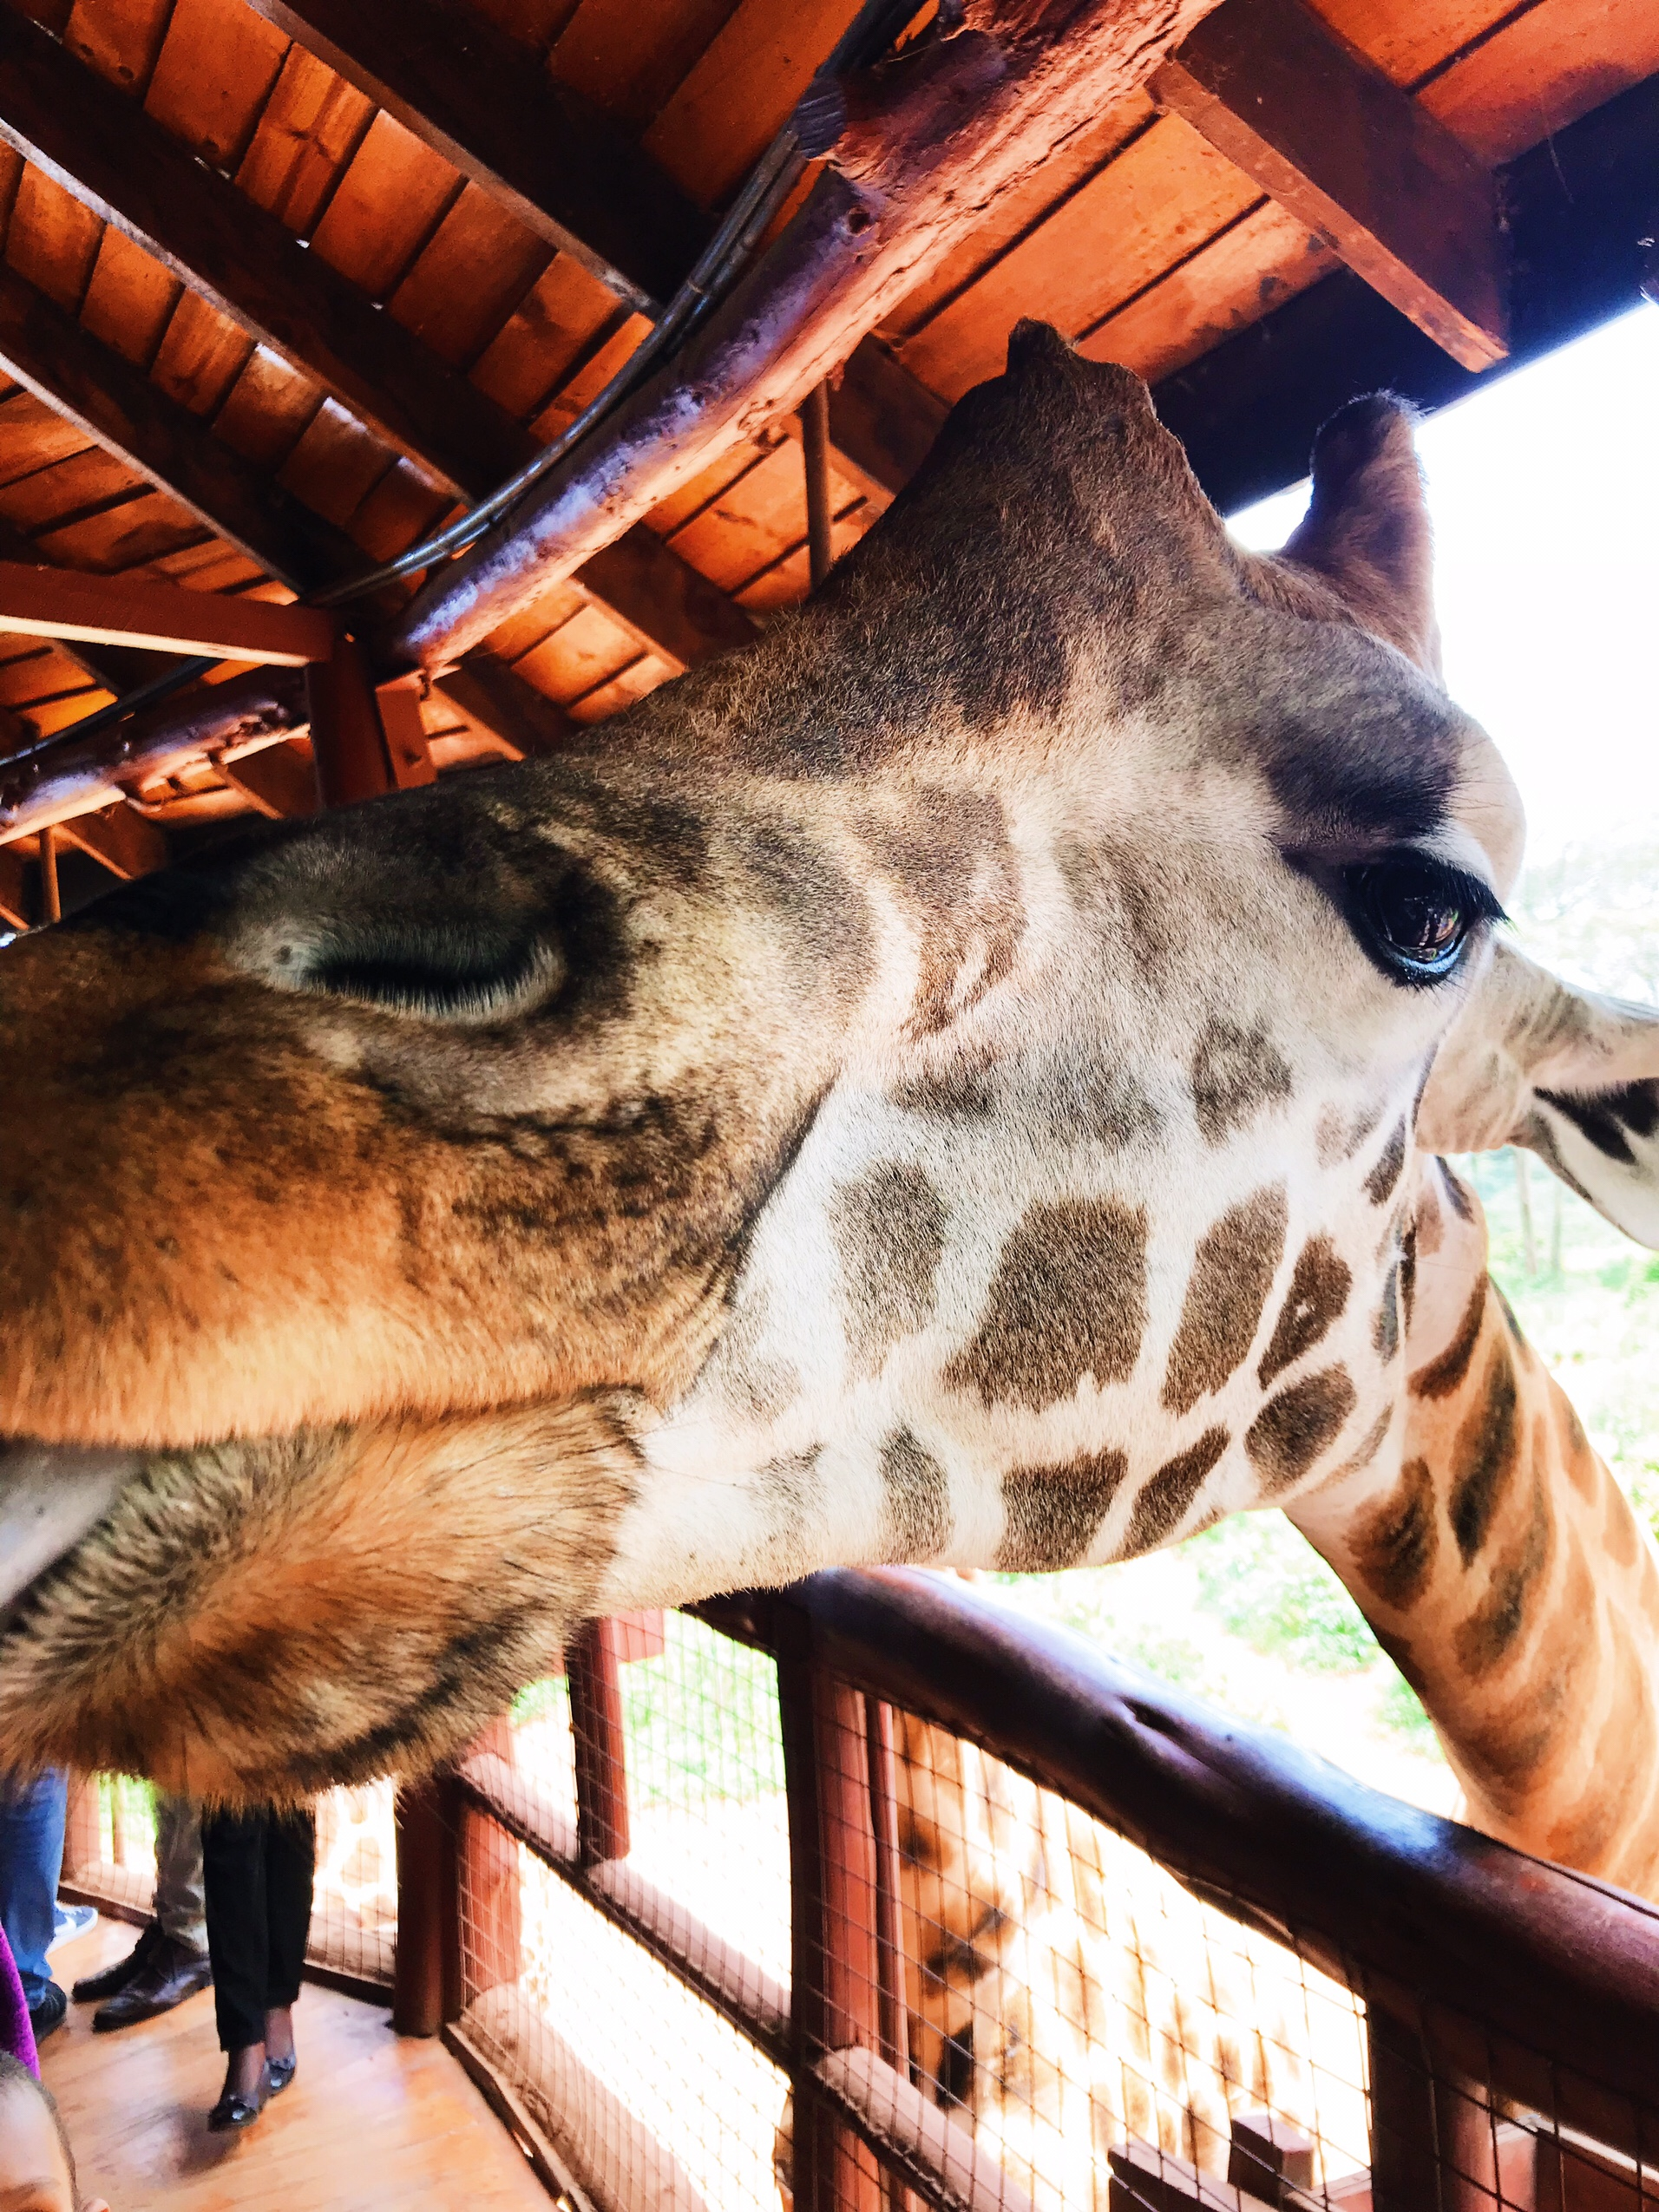 Image of close up giraffe in Nairobi